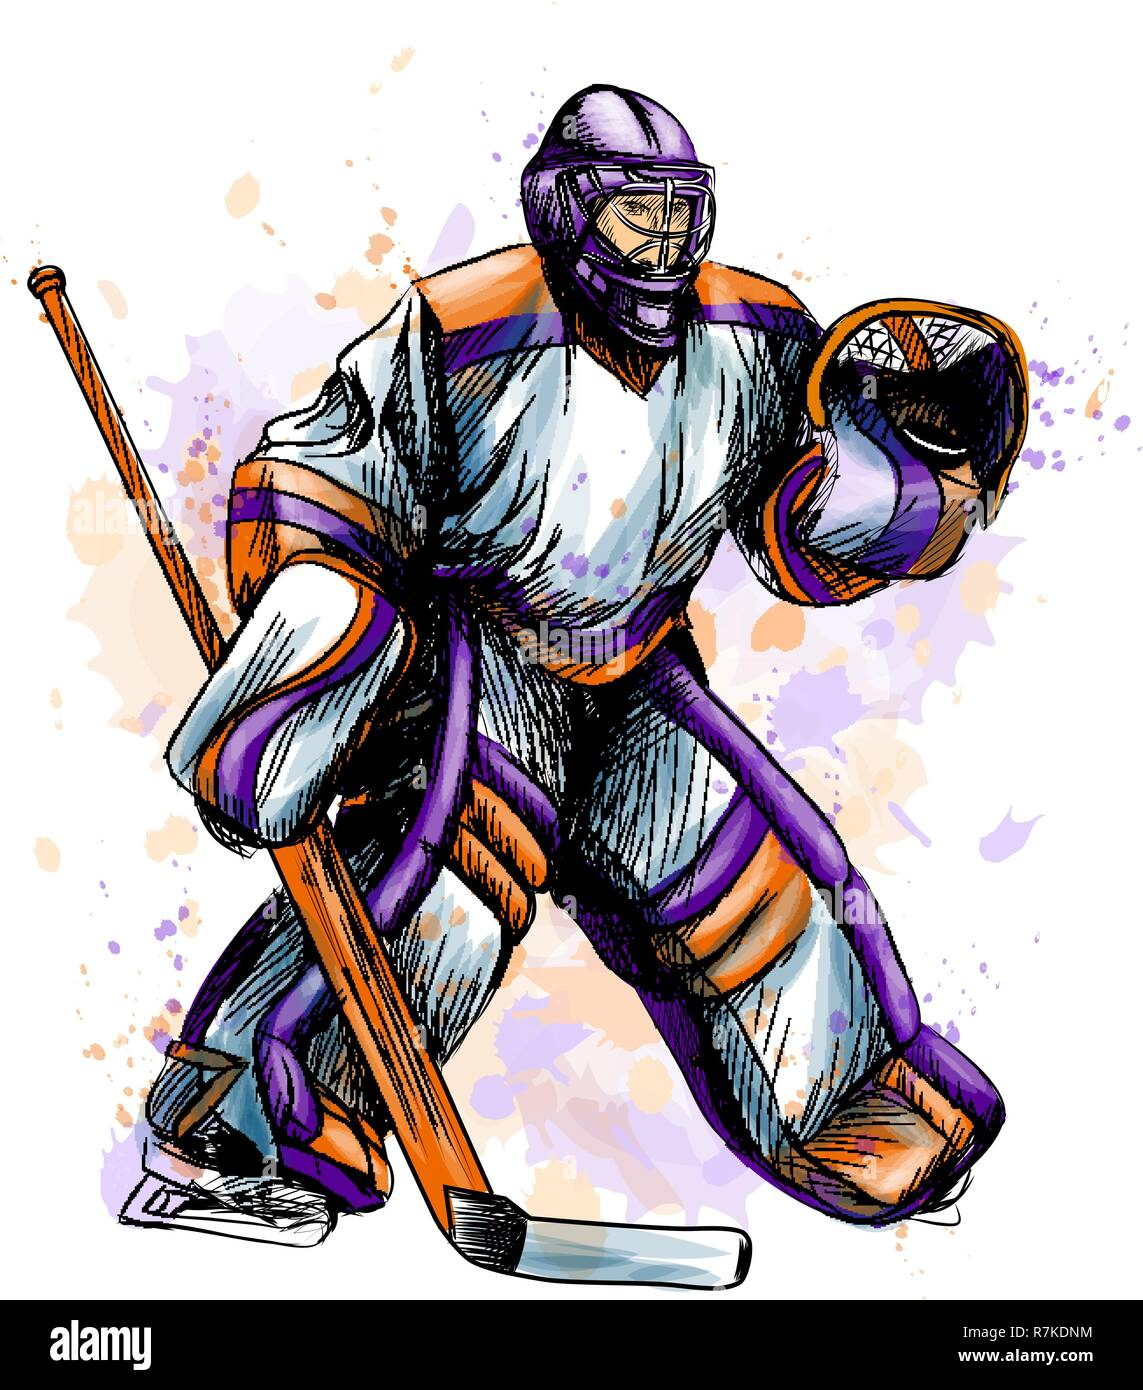 Abstract Hockey Goalkeeper From Splash Of Watercolors Hand Drawn